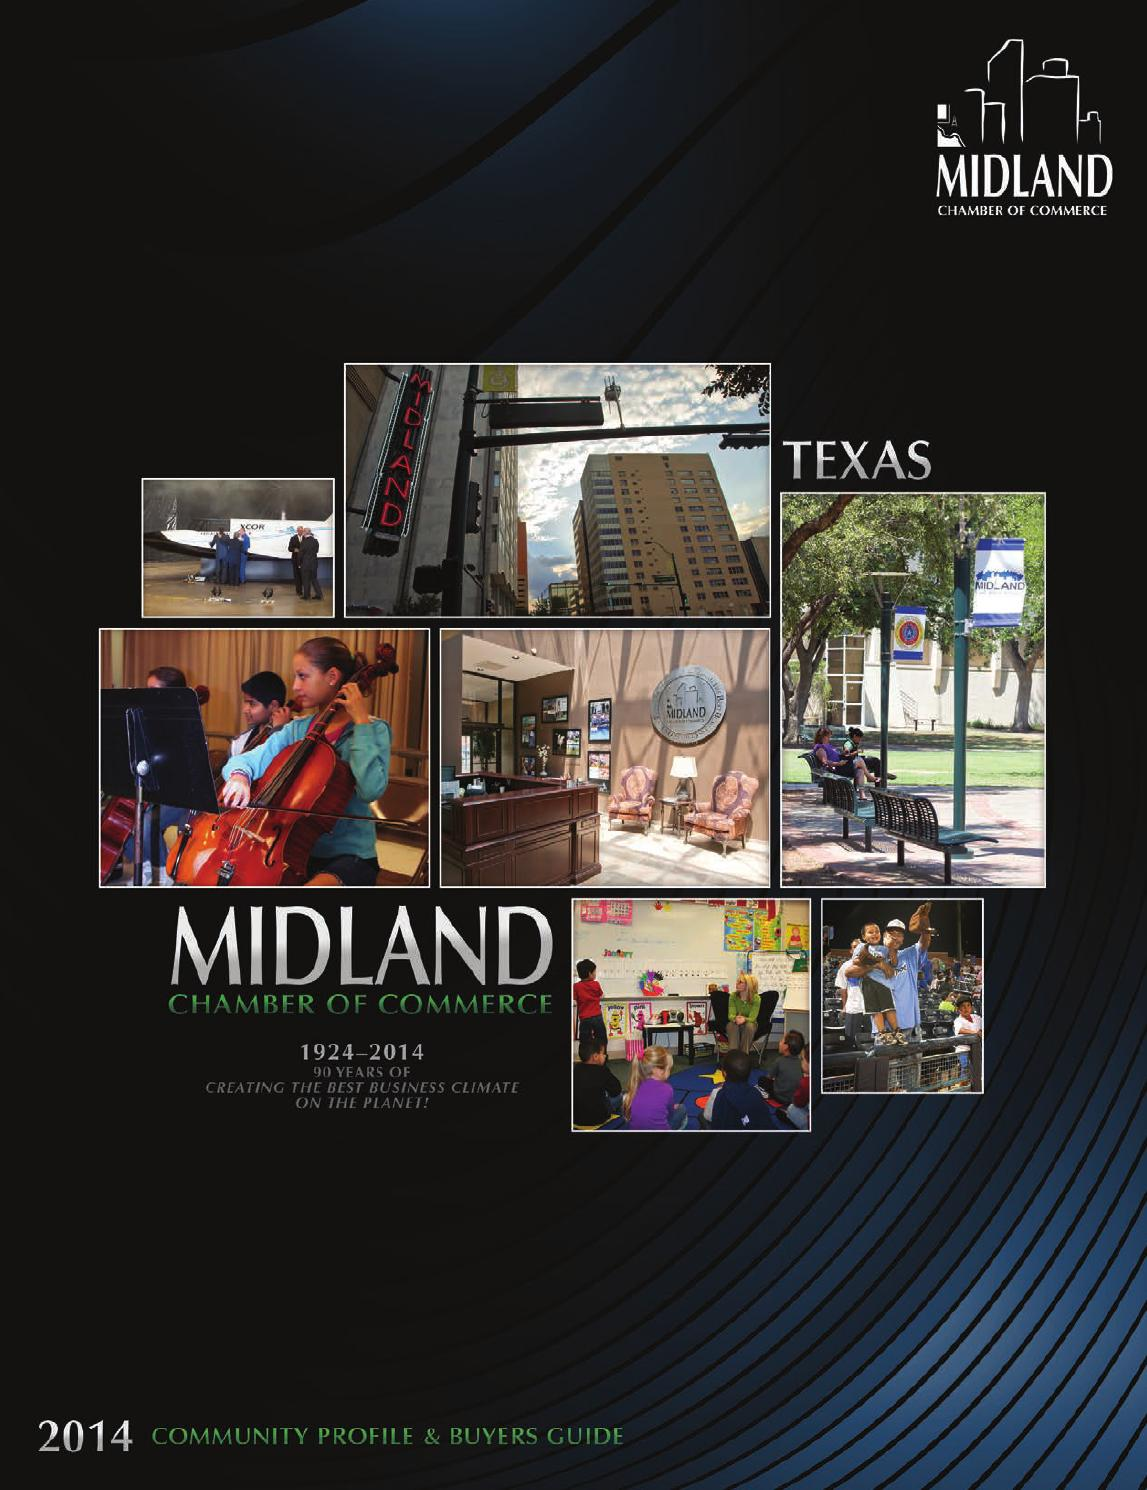 Midland Tx 2014 Community Profile And Buyers Guide By Tivoli Design